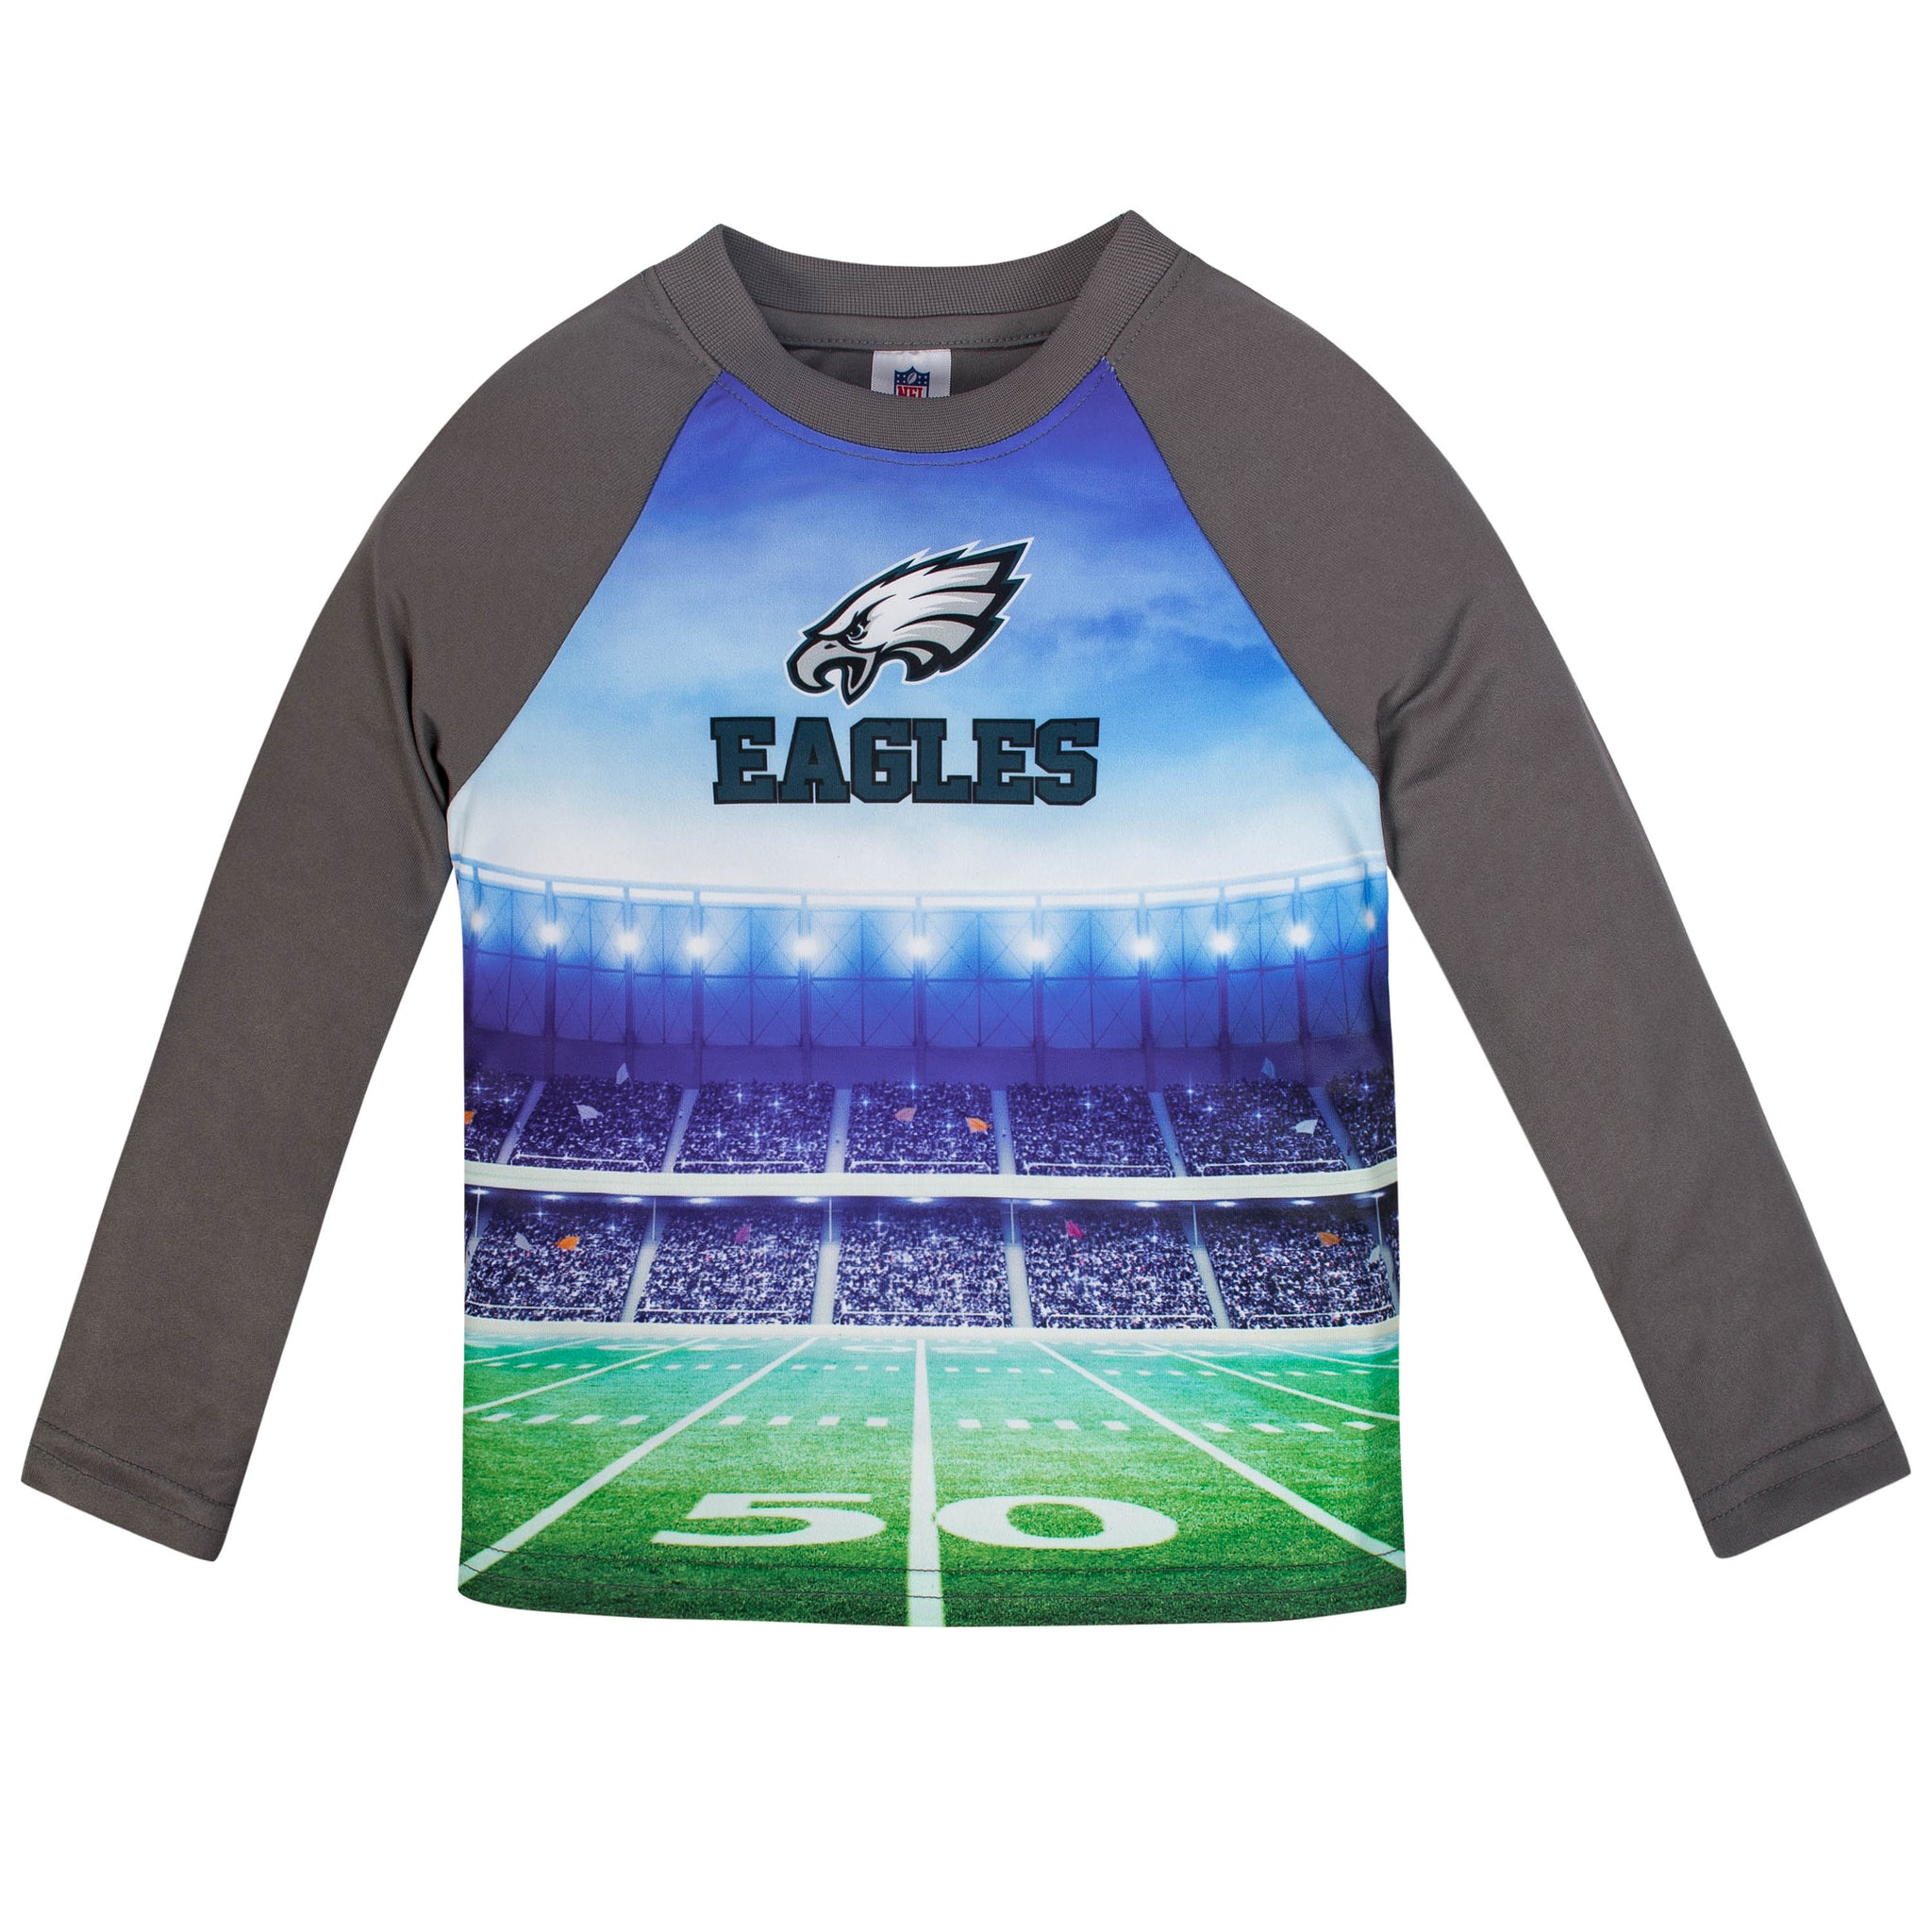 Philadelphia Eagles Boys Long Sleeve Tee Shirt-Gerber Childrenswear